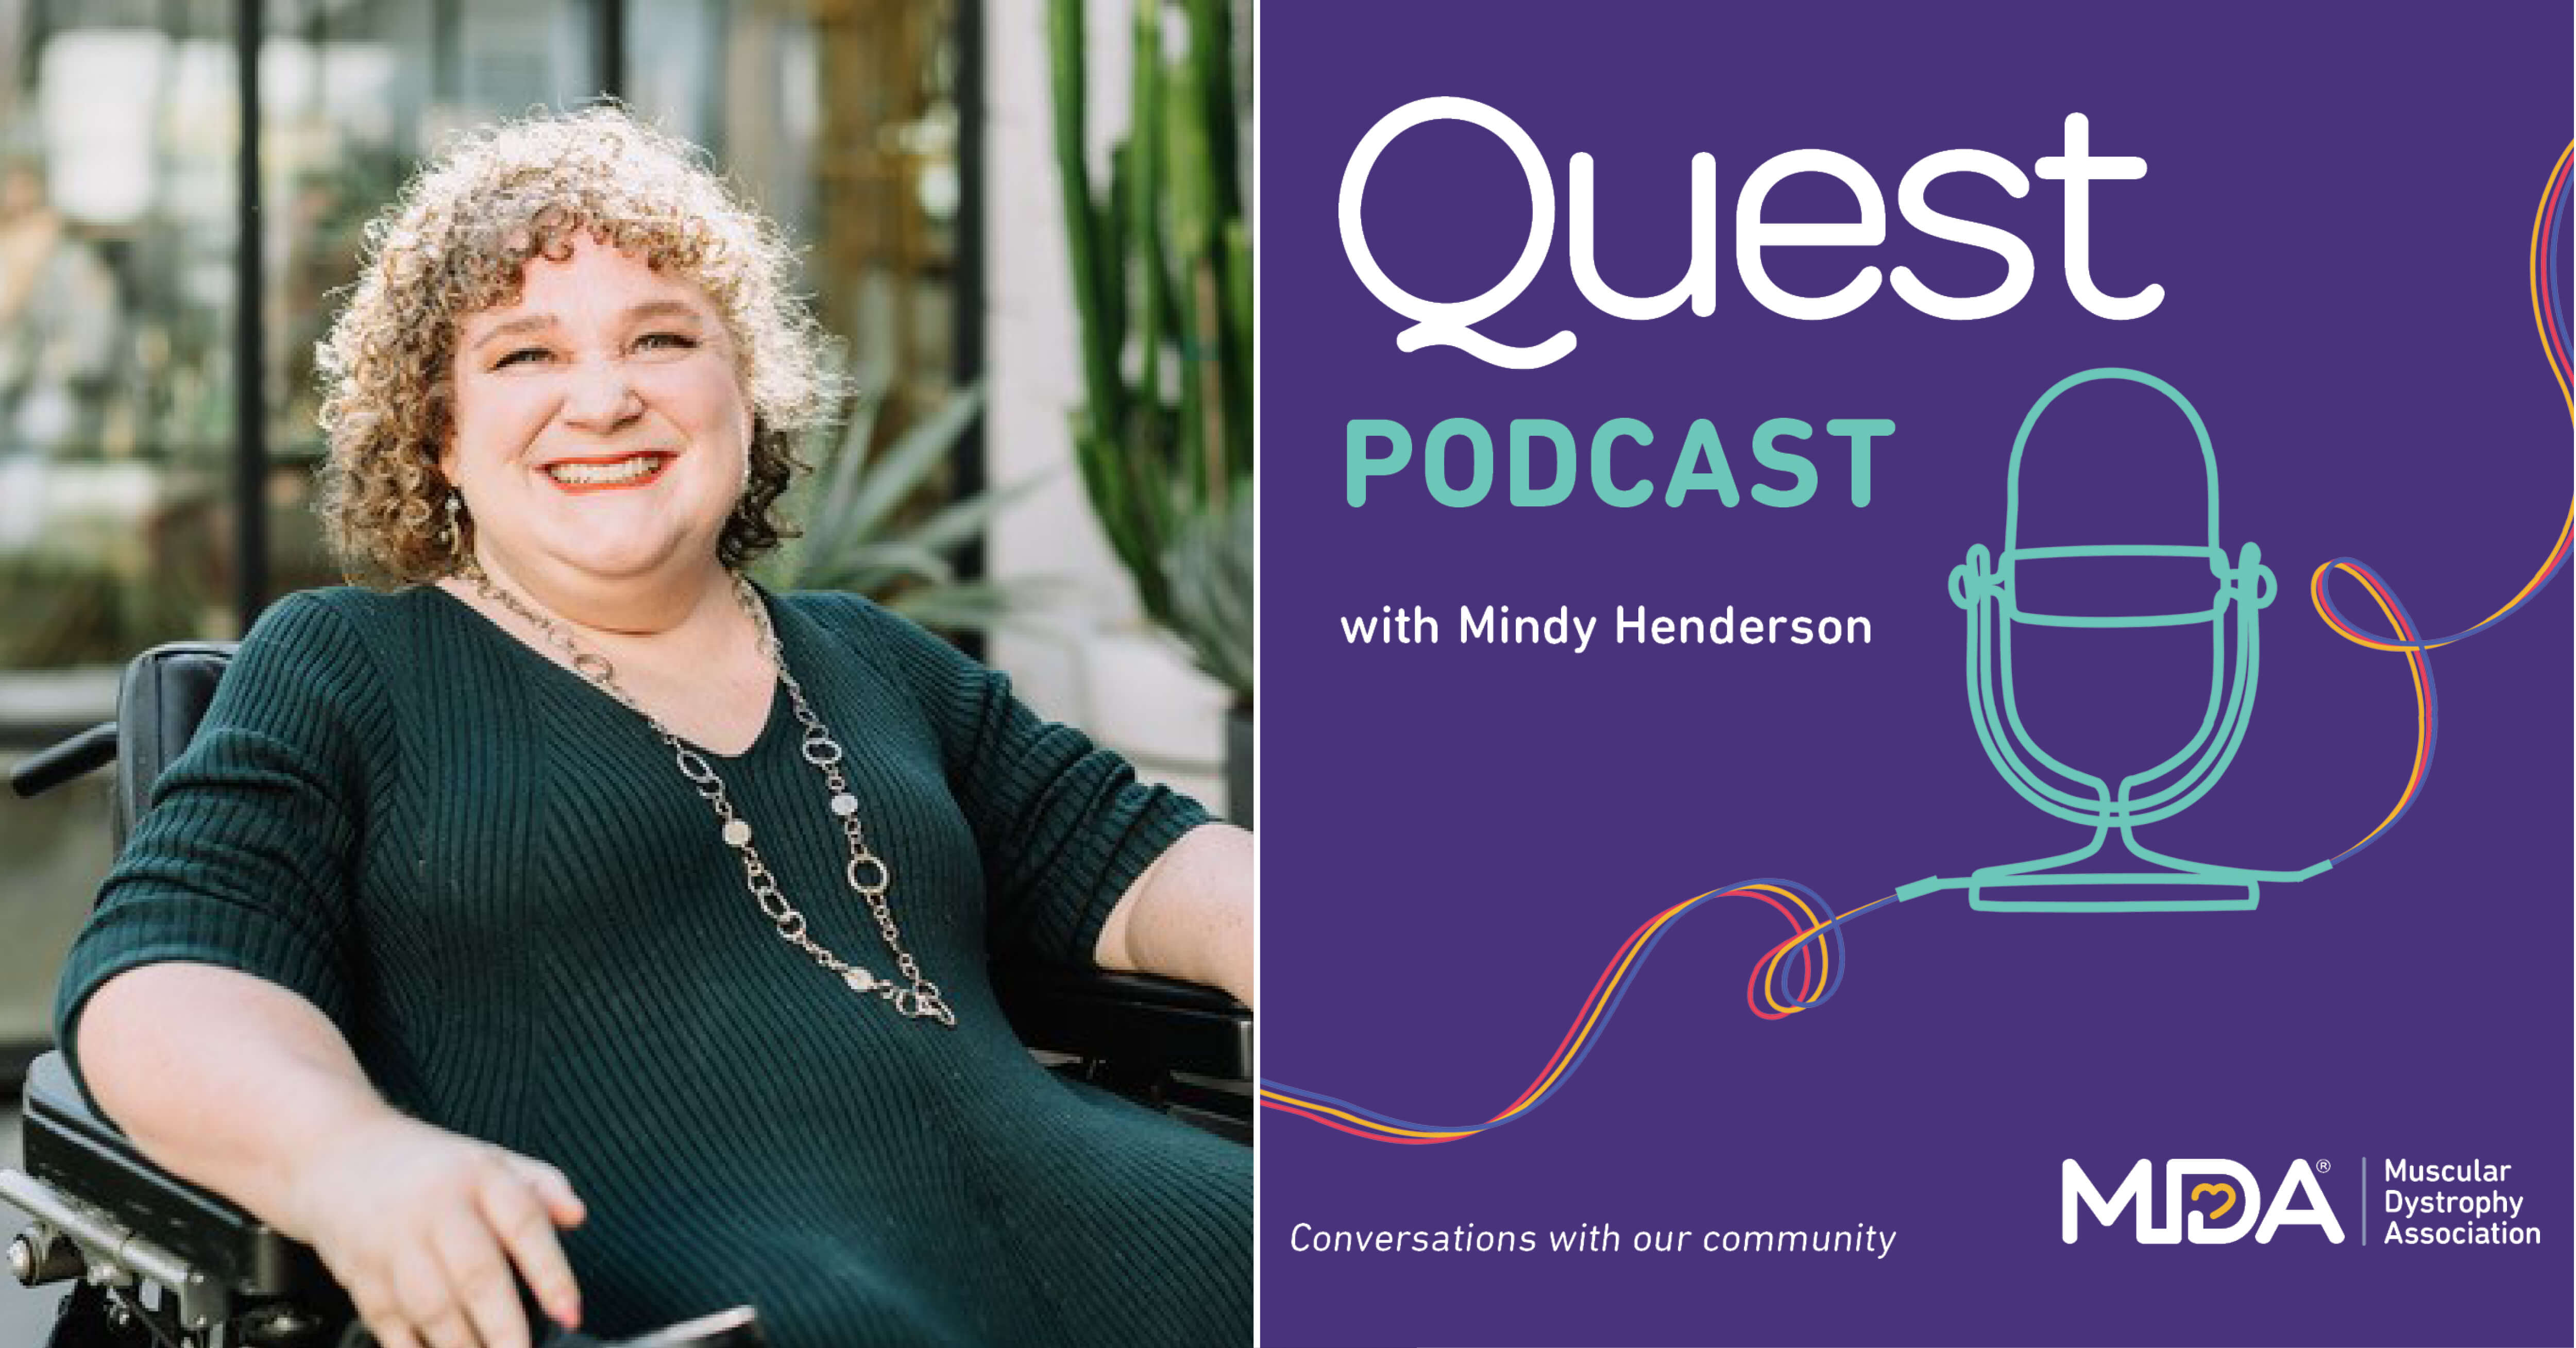 Quest Podcast with Mindy Henderson.